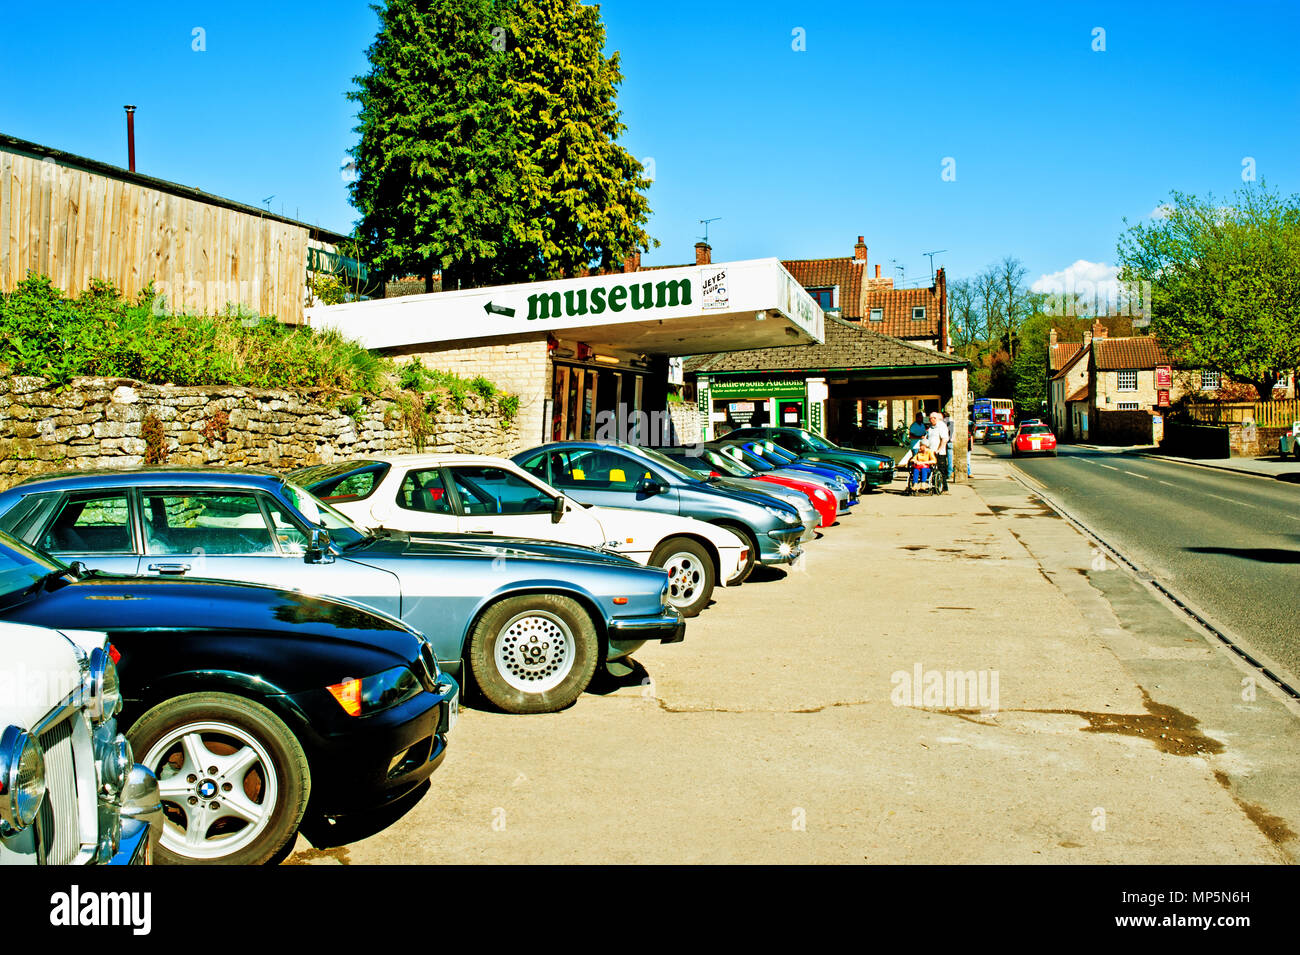 Cars Ready for Auction, Motor Museum, Thornton Le Dale, North Yorkshire, England - Stock Image